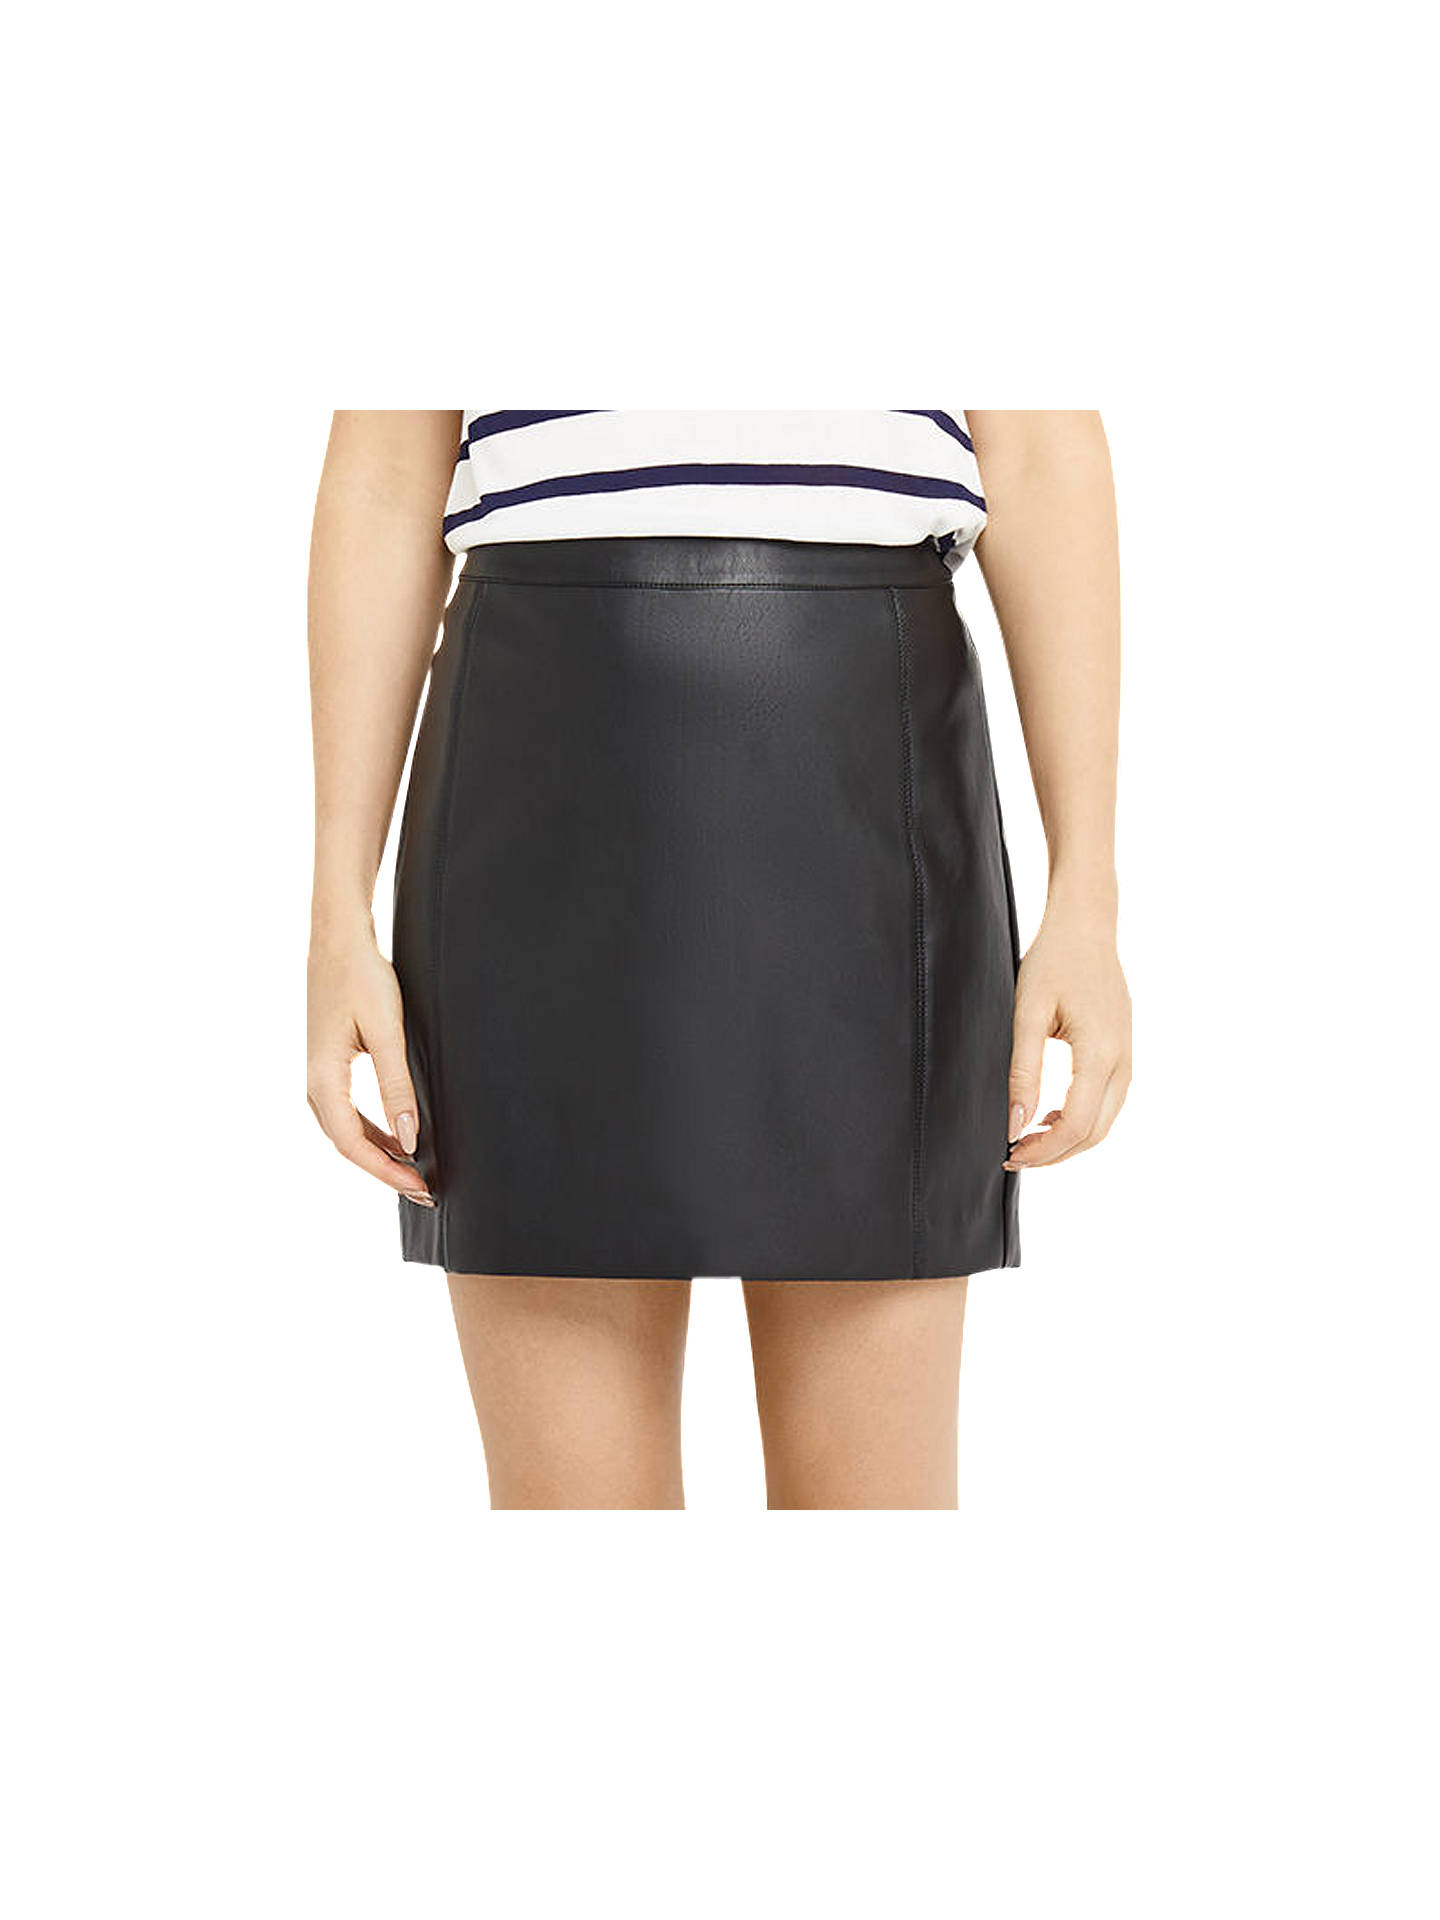 0c102b4e9 Buy Oasis Faux Leather Seamed Mini Skirt, Black, 8 Online at johnlewis.com  ...